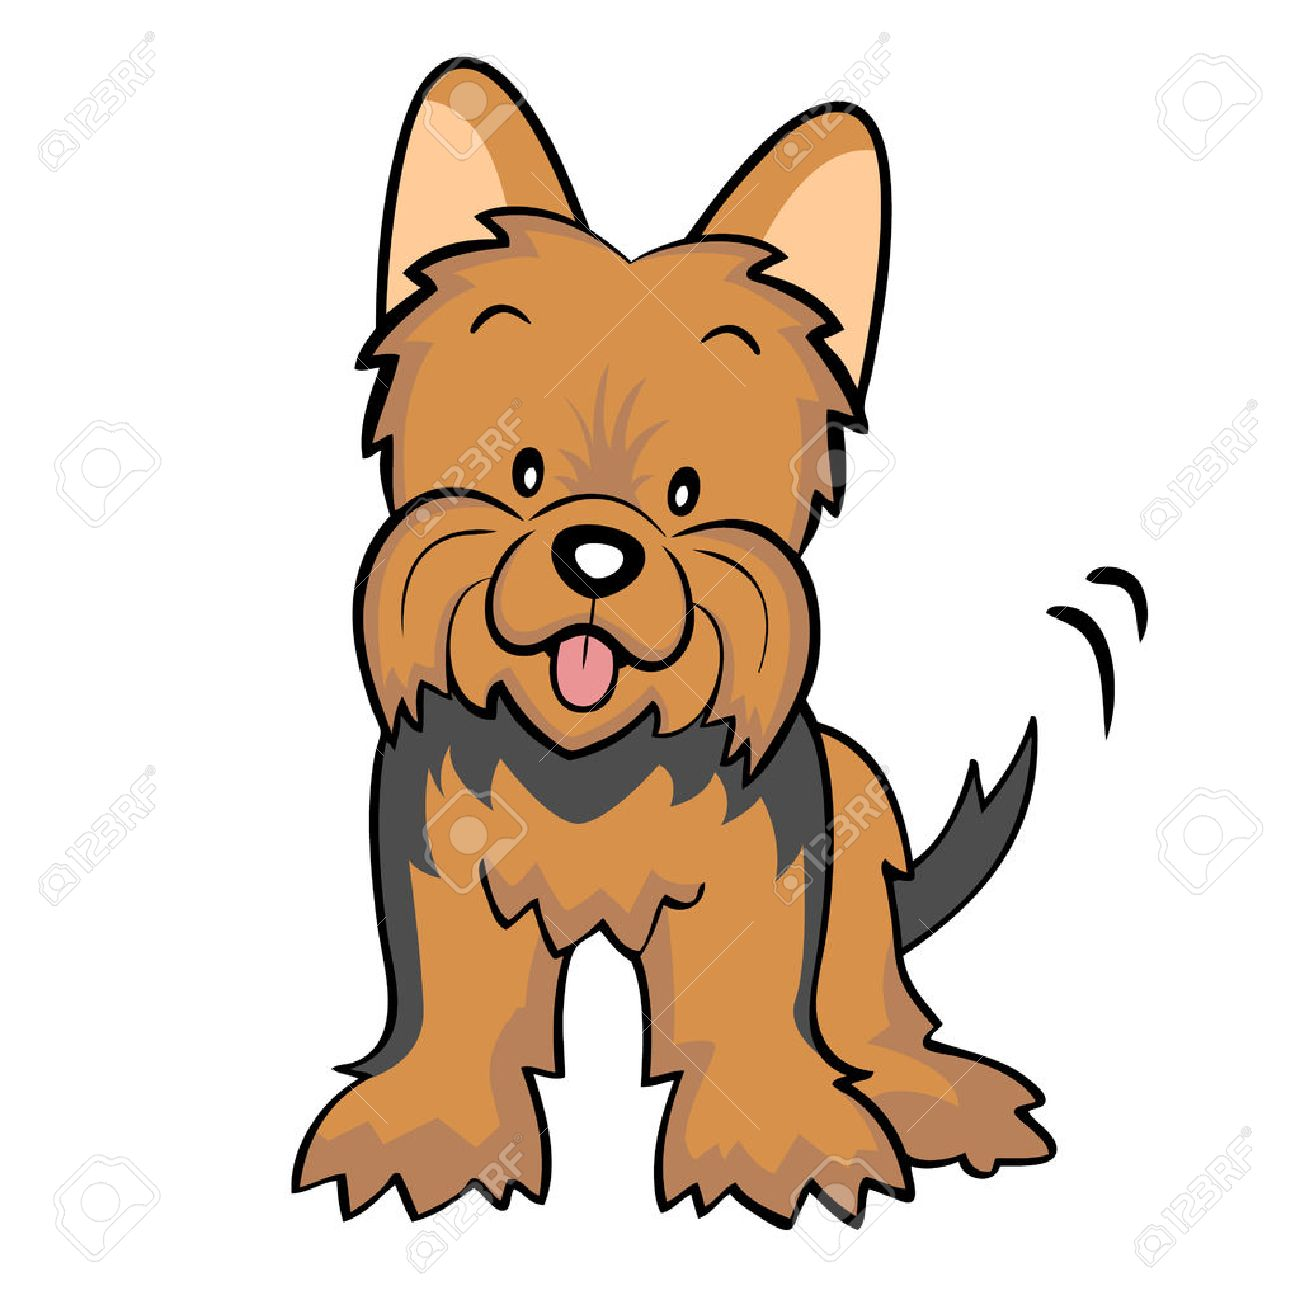 194 Yorkie Stock Illustrations, Cliparts And Royalty Free Yorkie ...